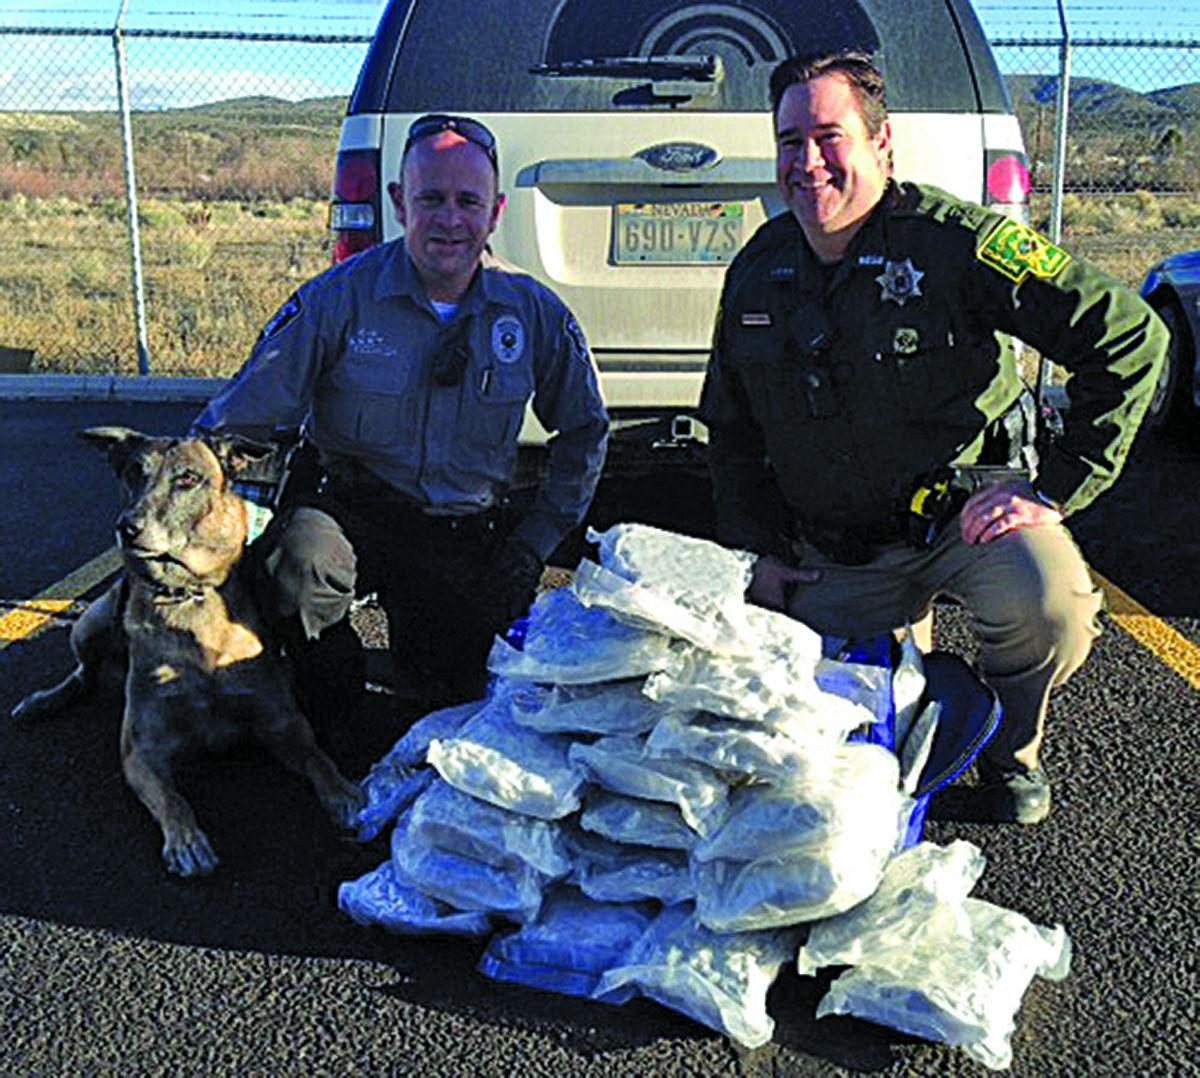 Police Find 2 Pounds Of Meth And Semi Automatic Weapons In: Narcotics Unit Arrests Man With 35 Pounds Of Pot In Car